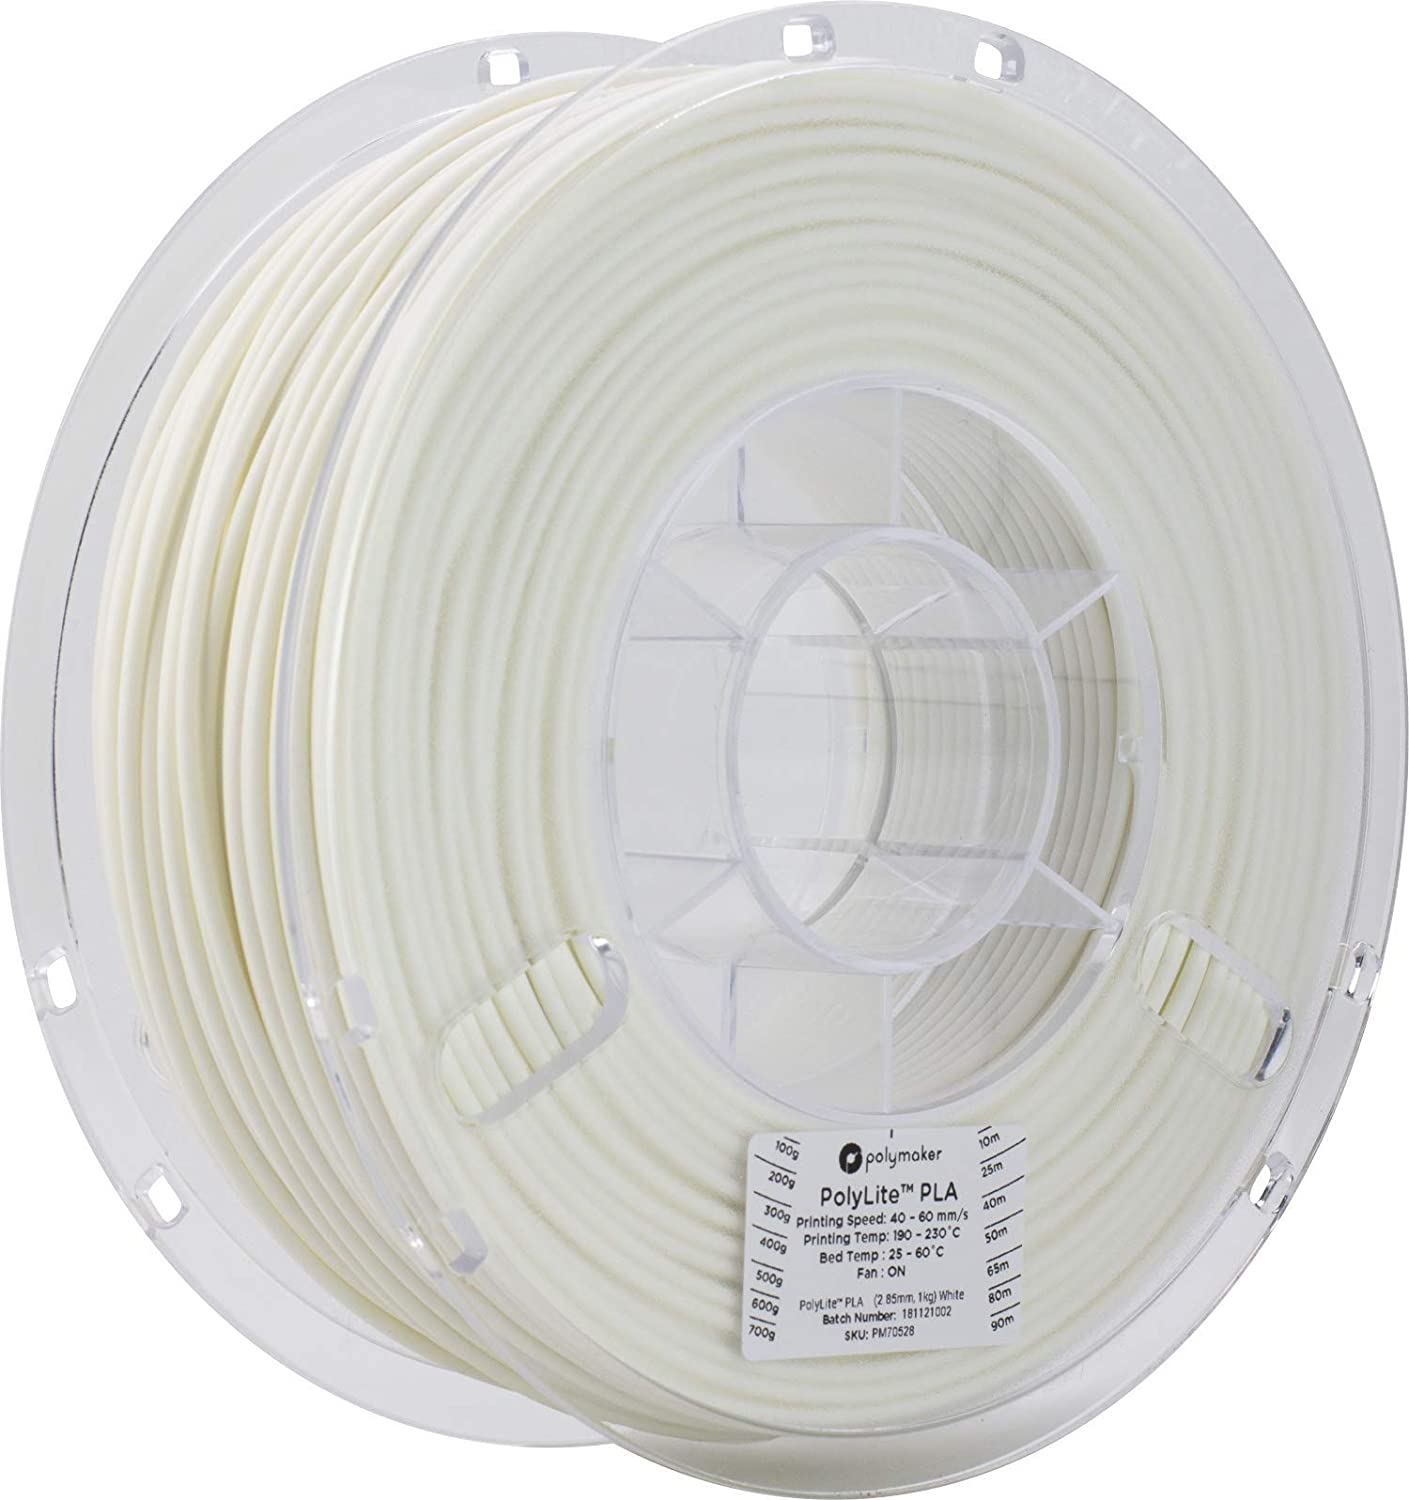 LulzBot PolyLite PLA Polymaker Filament 2.85 Reel Max 43% OFF Limited Special Price mm kg Tru 1